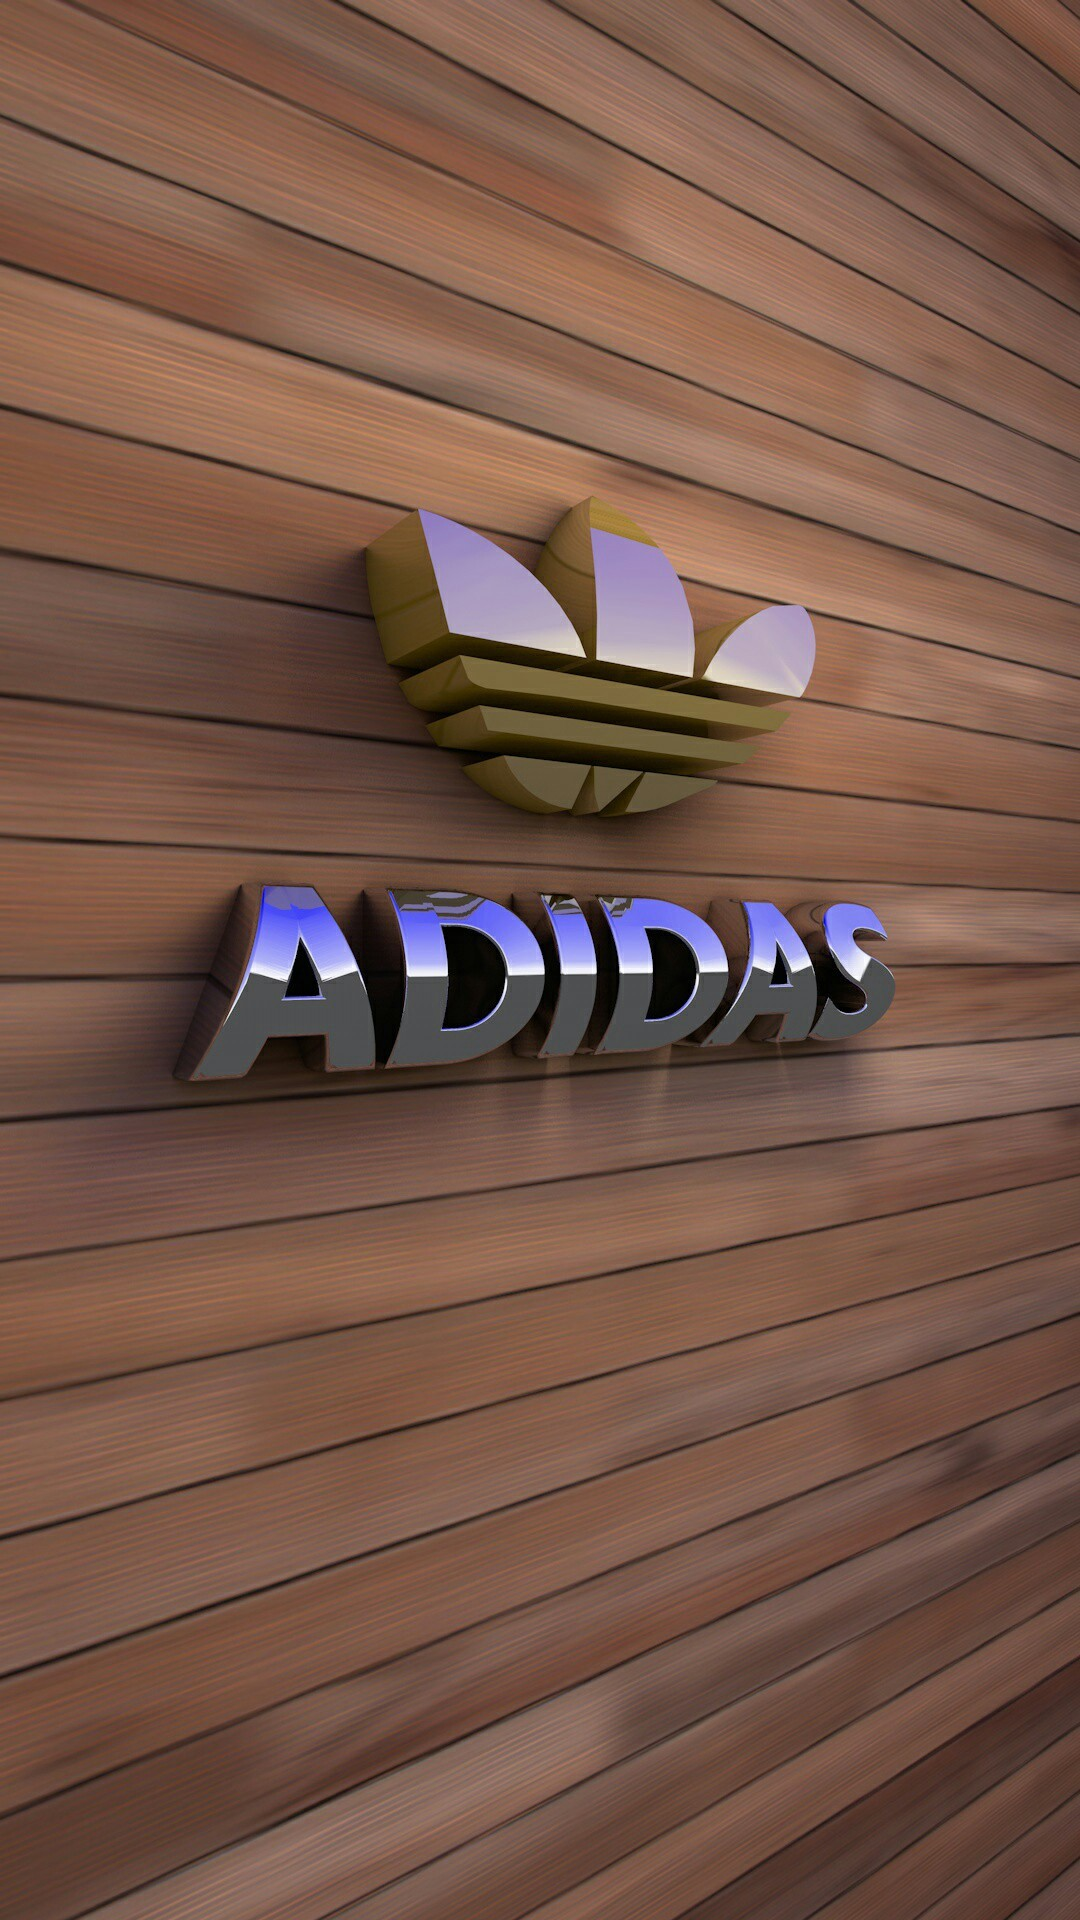 Wallpaper Chelsea 3d Android Adidas 2018 Wallpaper 75 Images